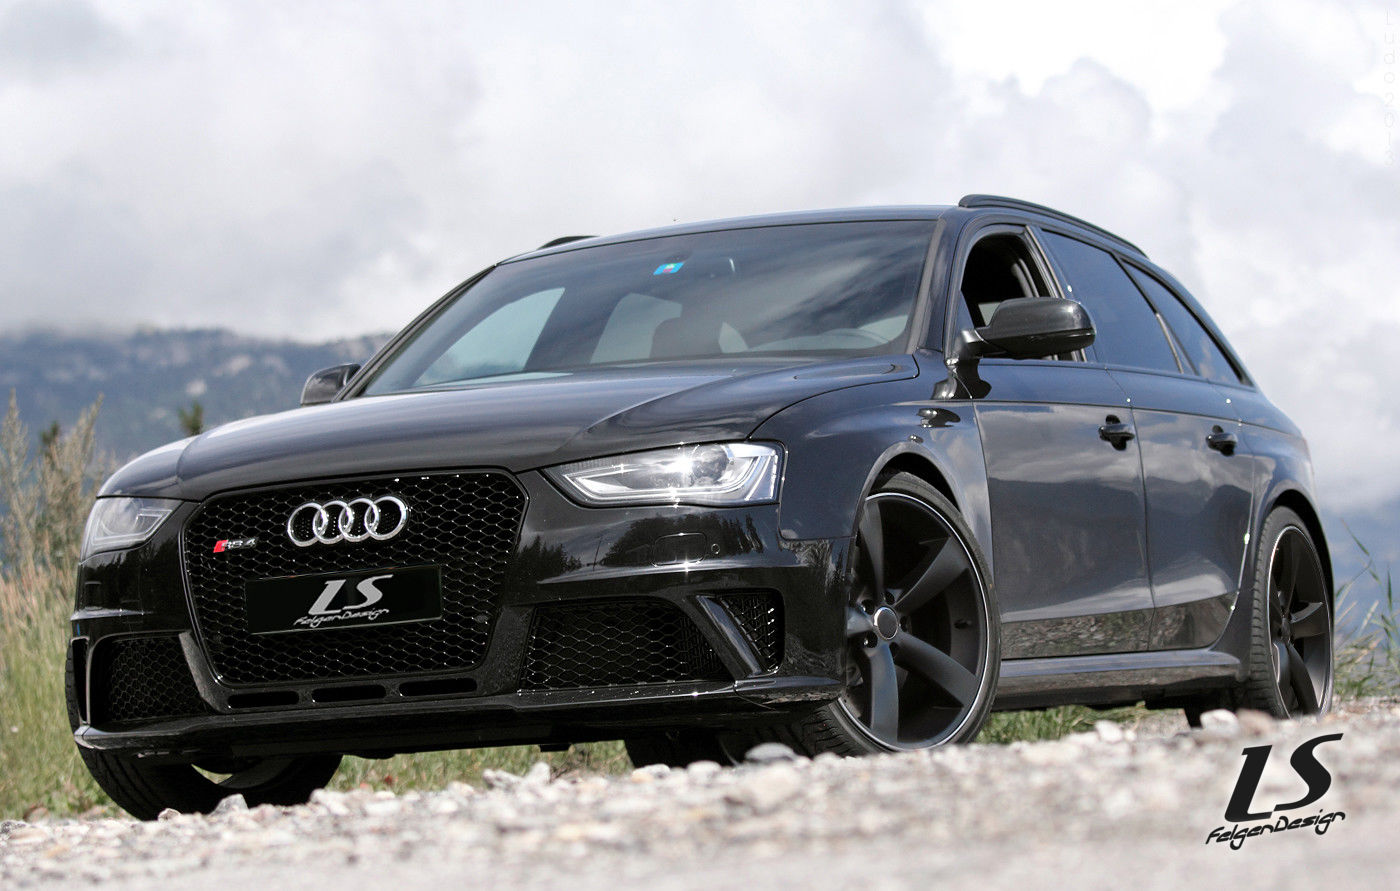 2015 Audi Rs4 Avant 8k Pictures Information And Specs